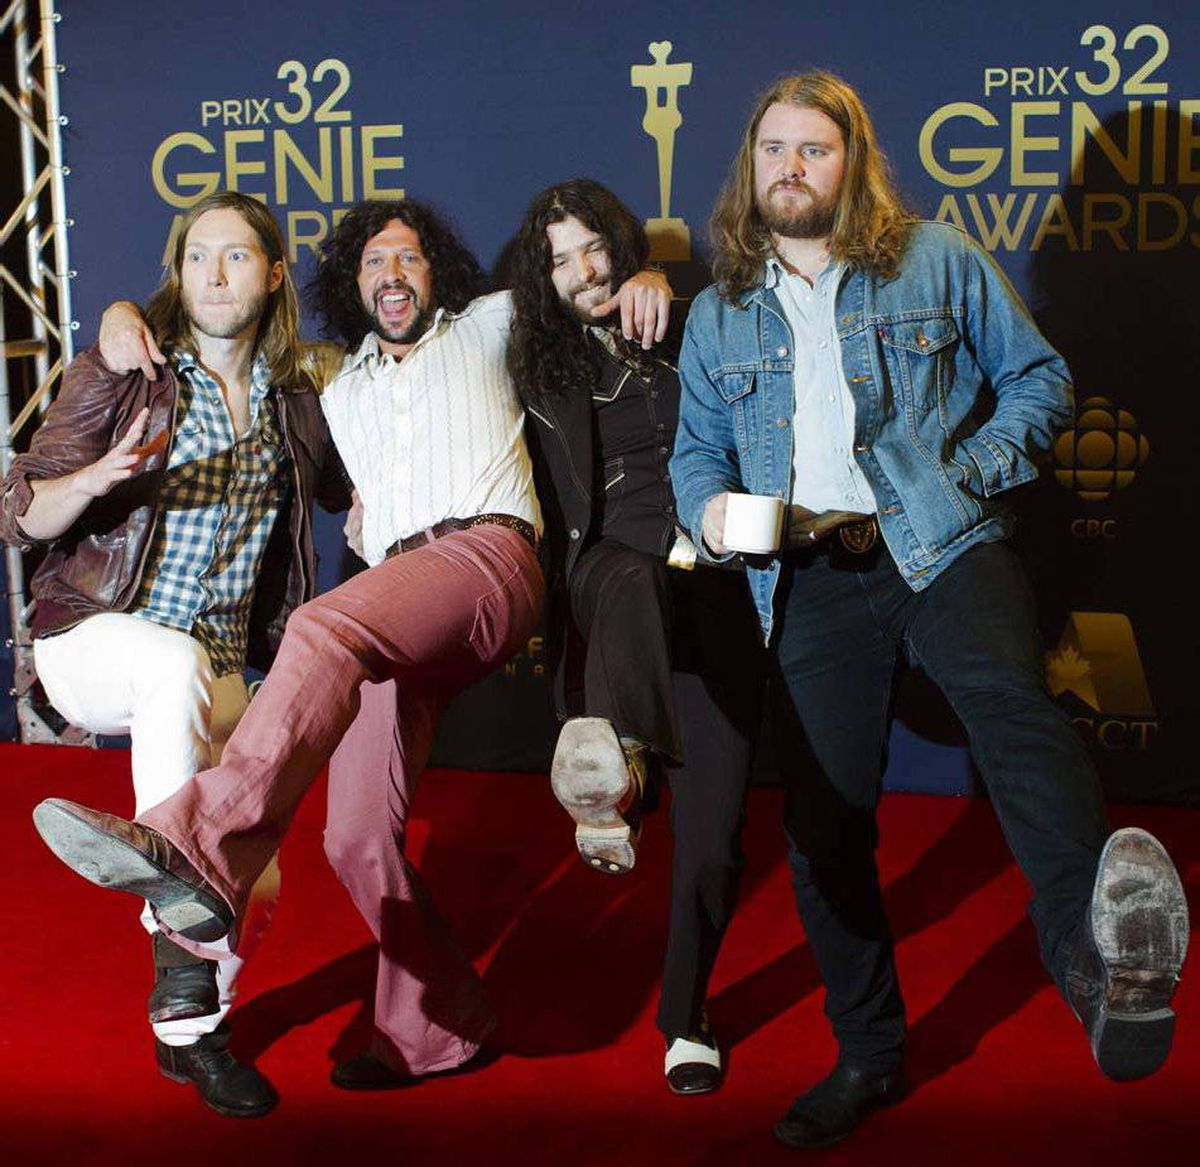 Members of the Canadian rock band The Sheepdogs dutifully act all irrepressible and outrageous at the Genie Awards in Toronto last week. Especially convincing is the dude on the right with one hand in his pocket and the other holding a cup of decaf.